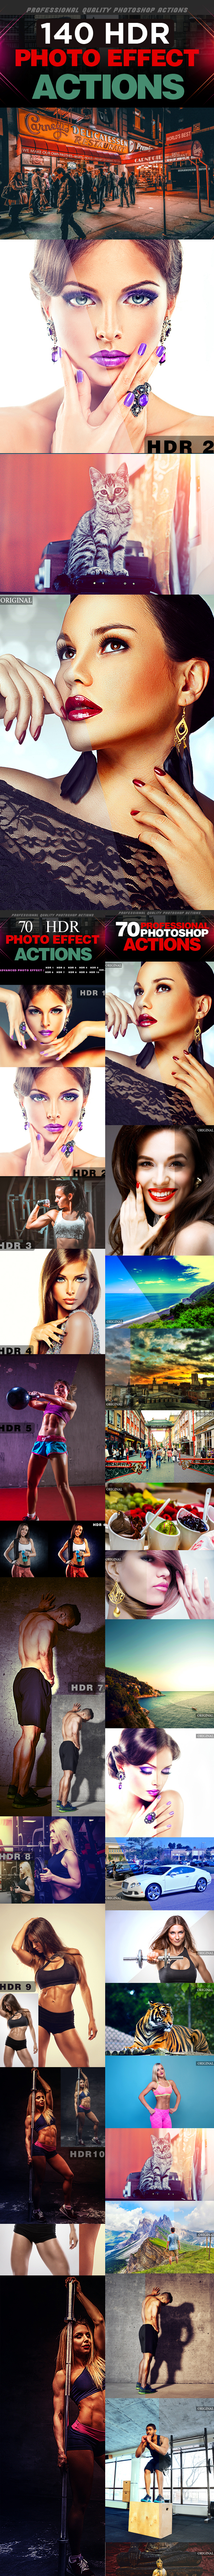 140 HDR Actions Set Bundle - Photo Effects Actions